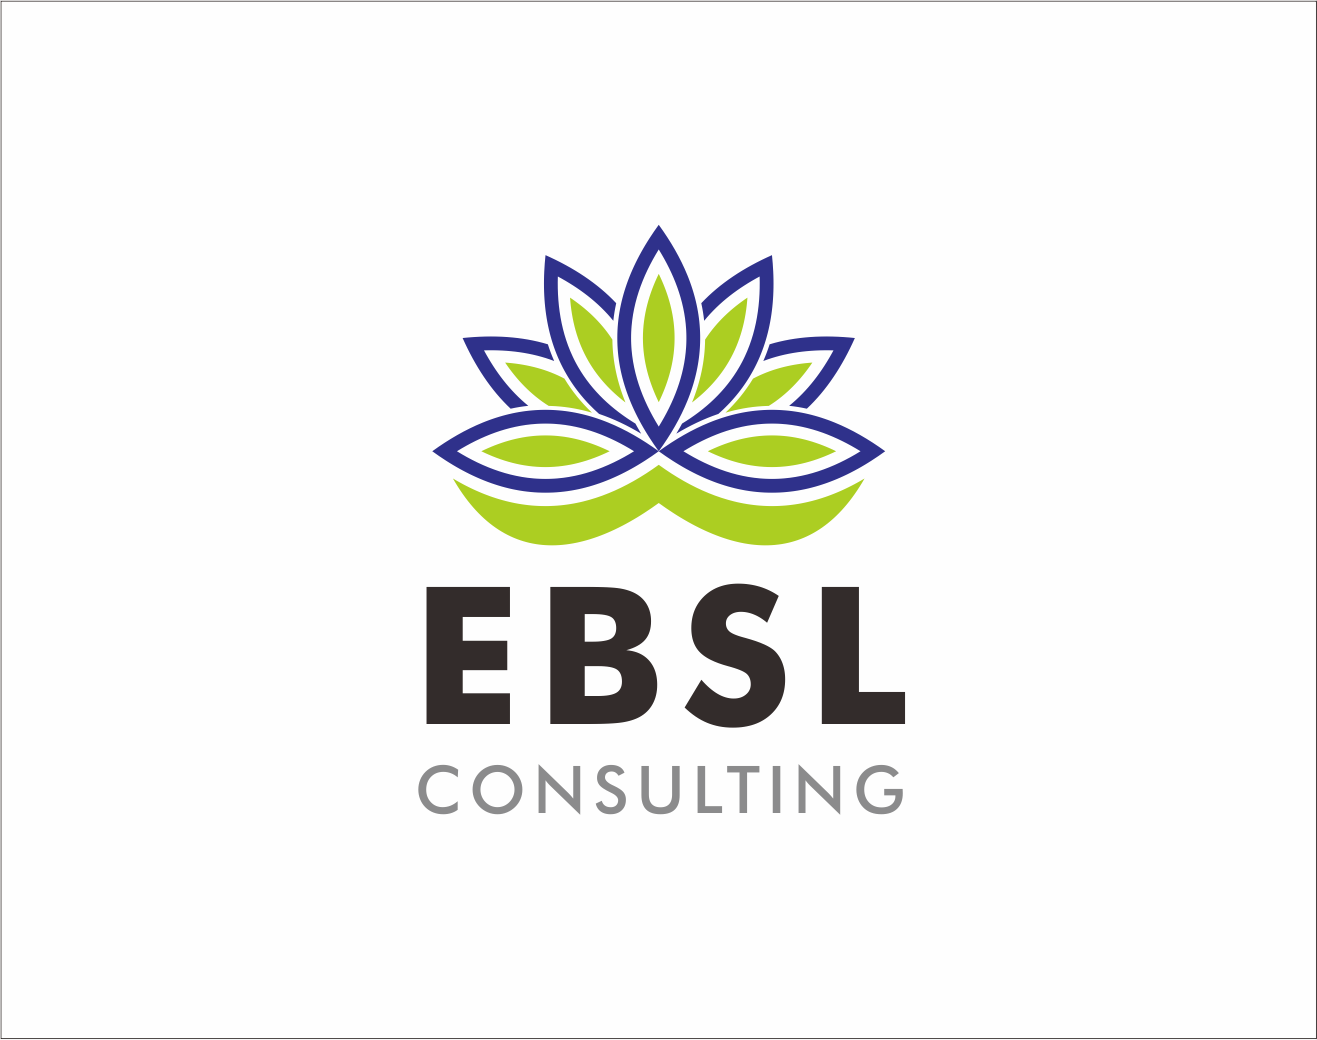 Logo Design by Armada Jamaluddin - Entry No. 104 in the Logo Design Contest EBSL Consulting Logo Design.